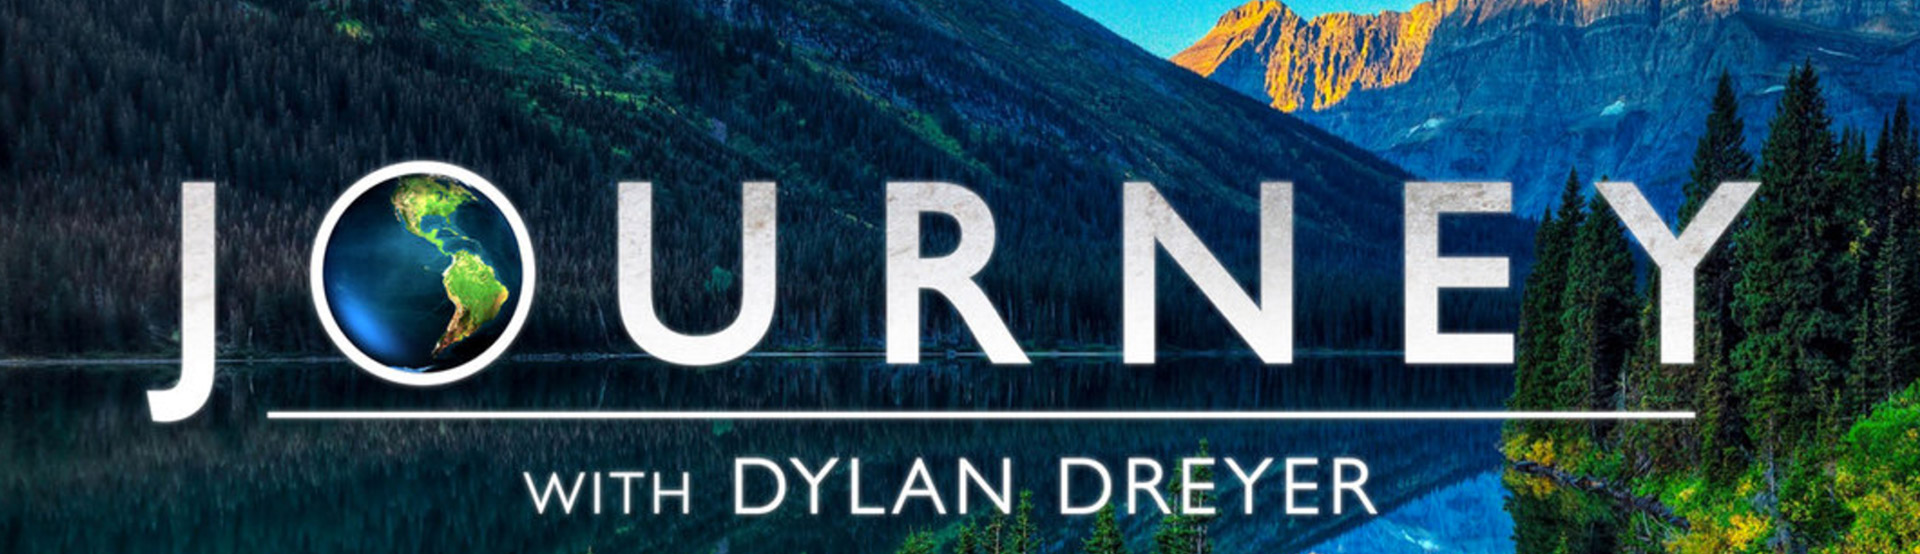 Banner image for Journey With Dylan Dreyer